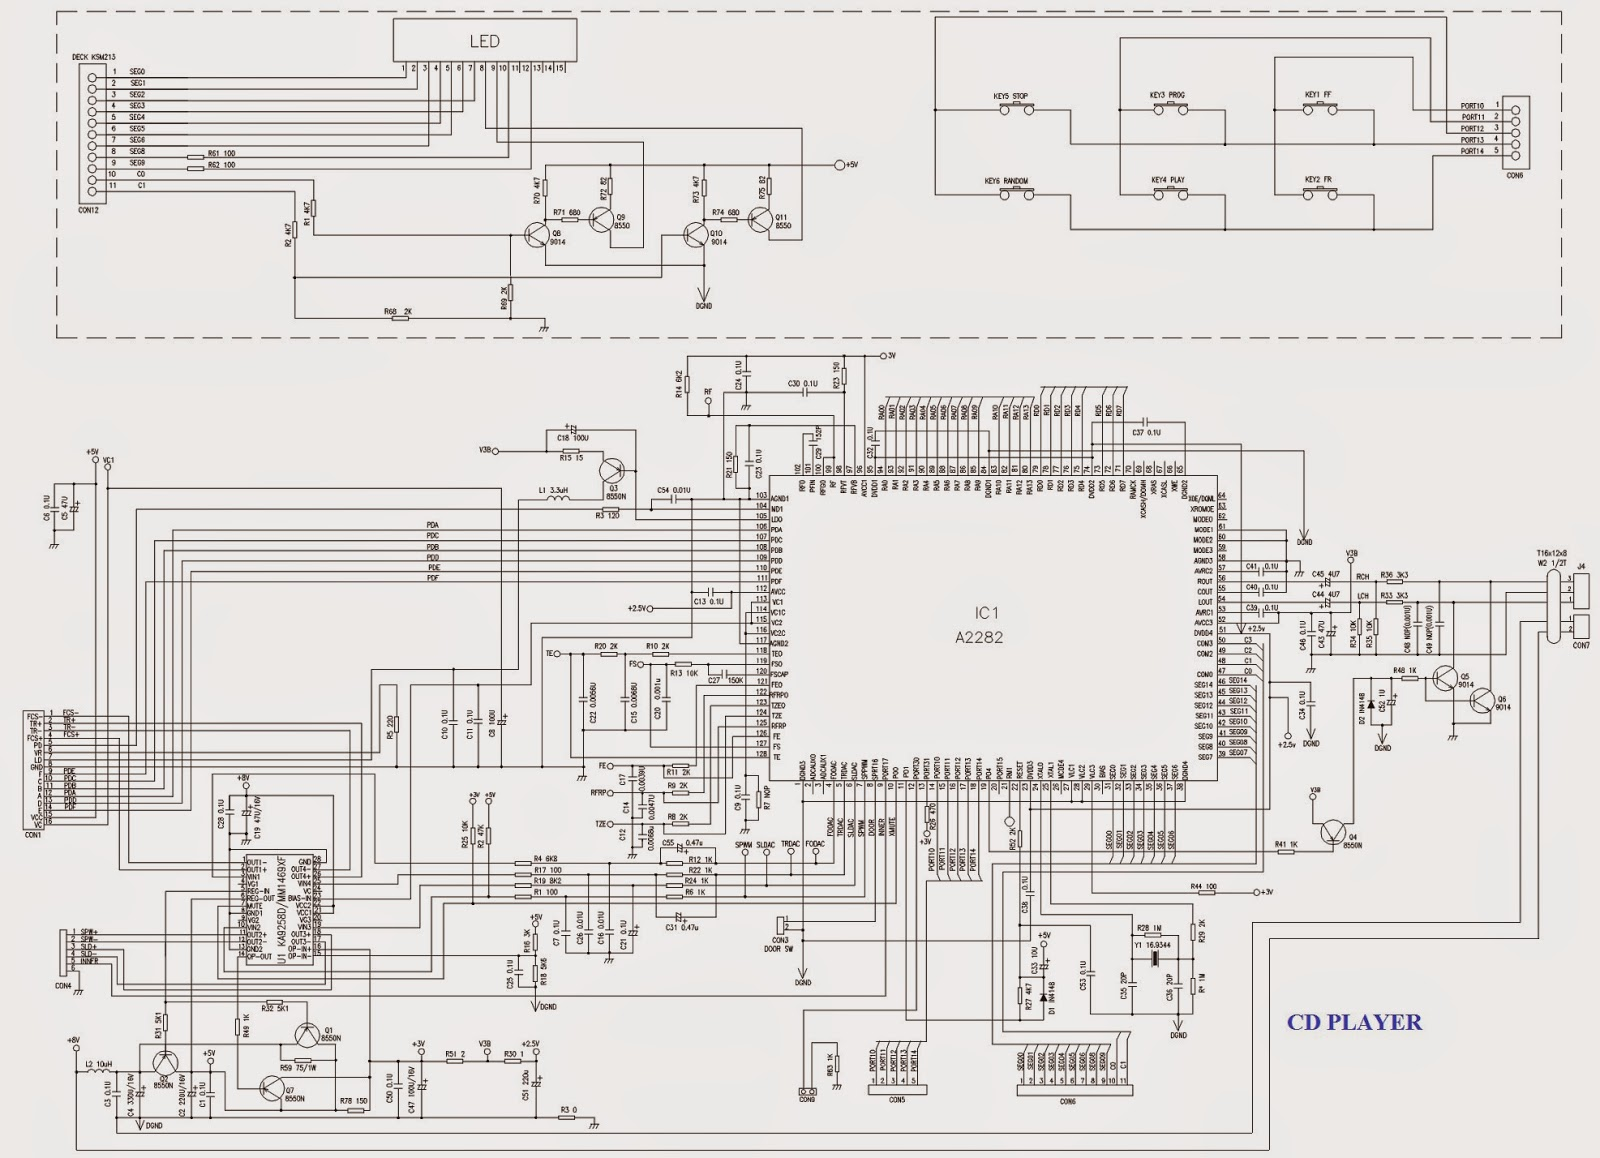 cd player schematic  cd  free engine image for user manual